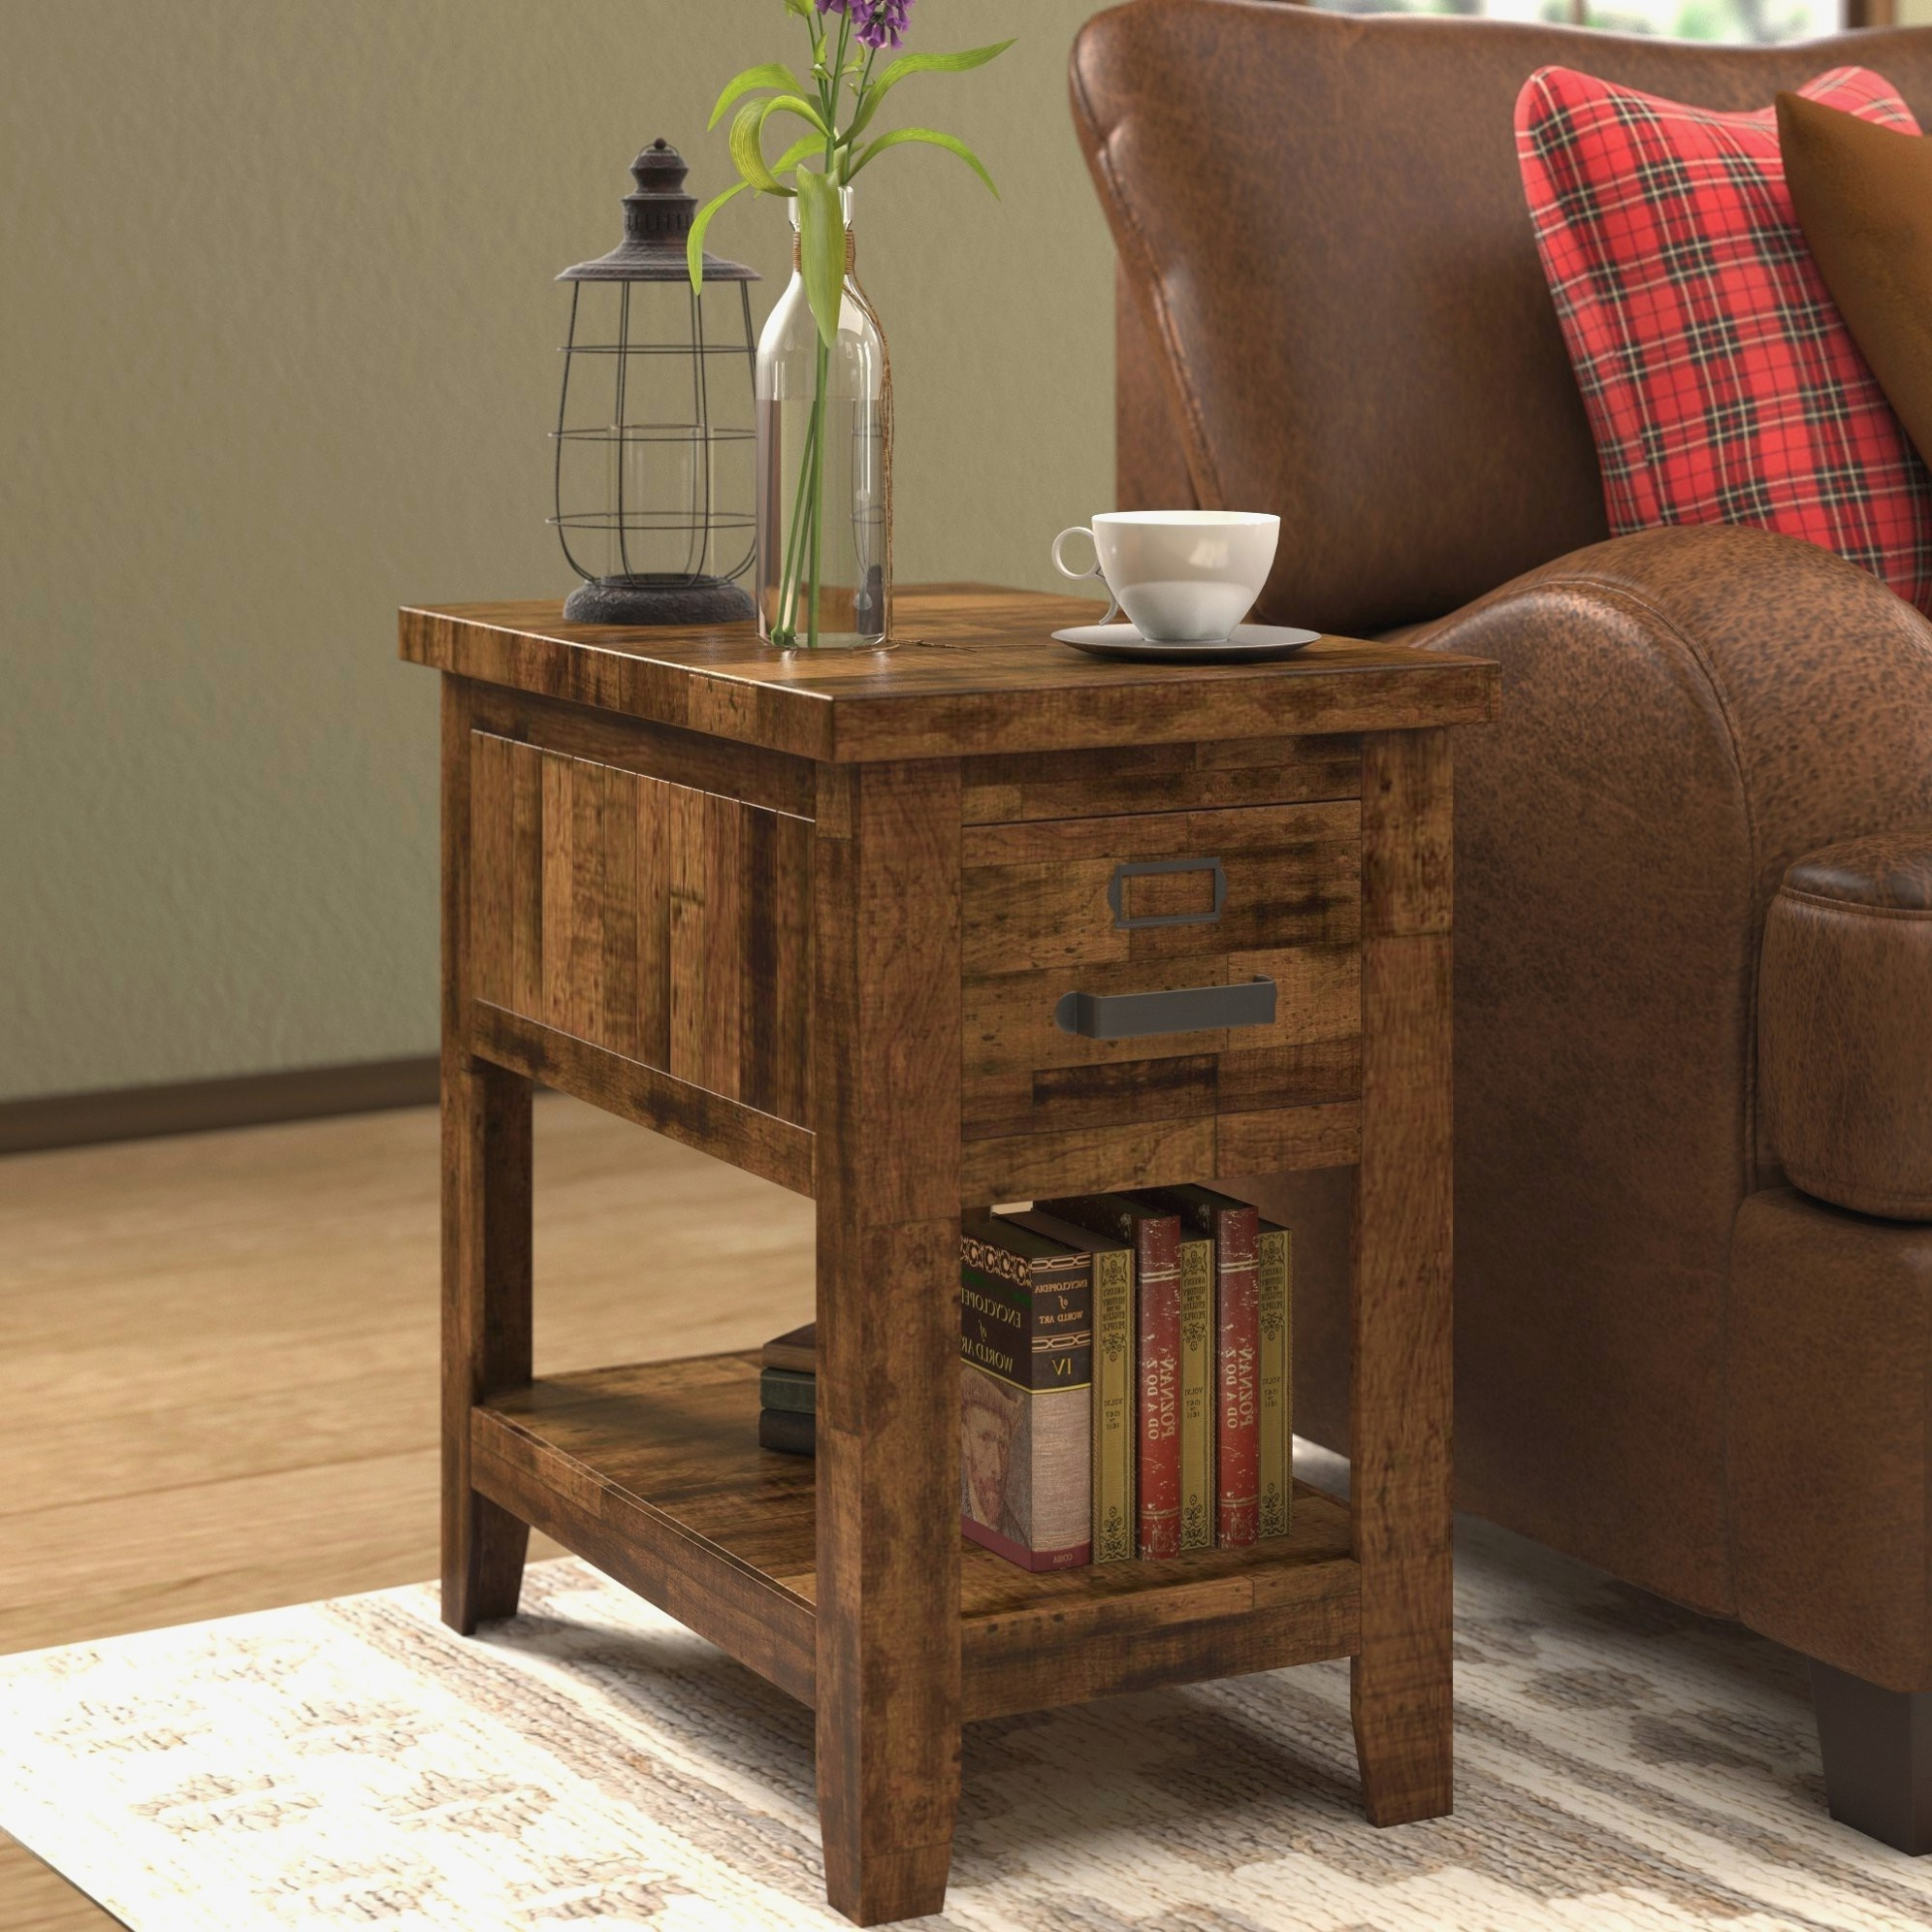 Trendy Coffee Tables And Tv Stands Quoet Coffee Table And Tv Stand Set Intended For Coffee Tables And Tv Stands (View 15 of 20)